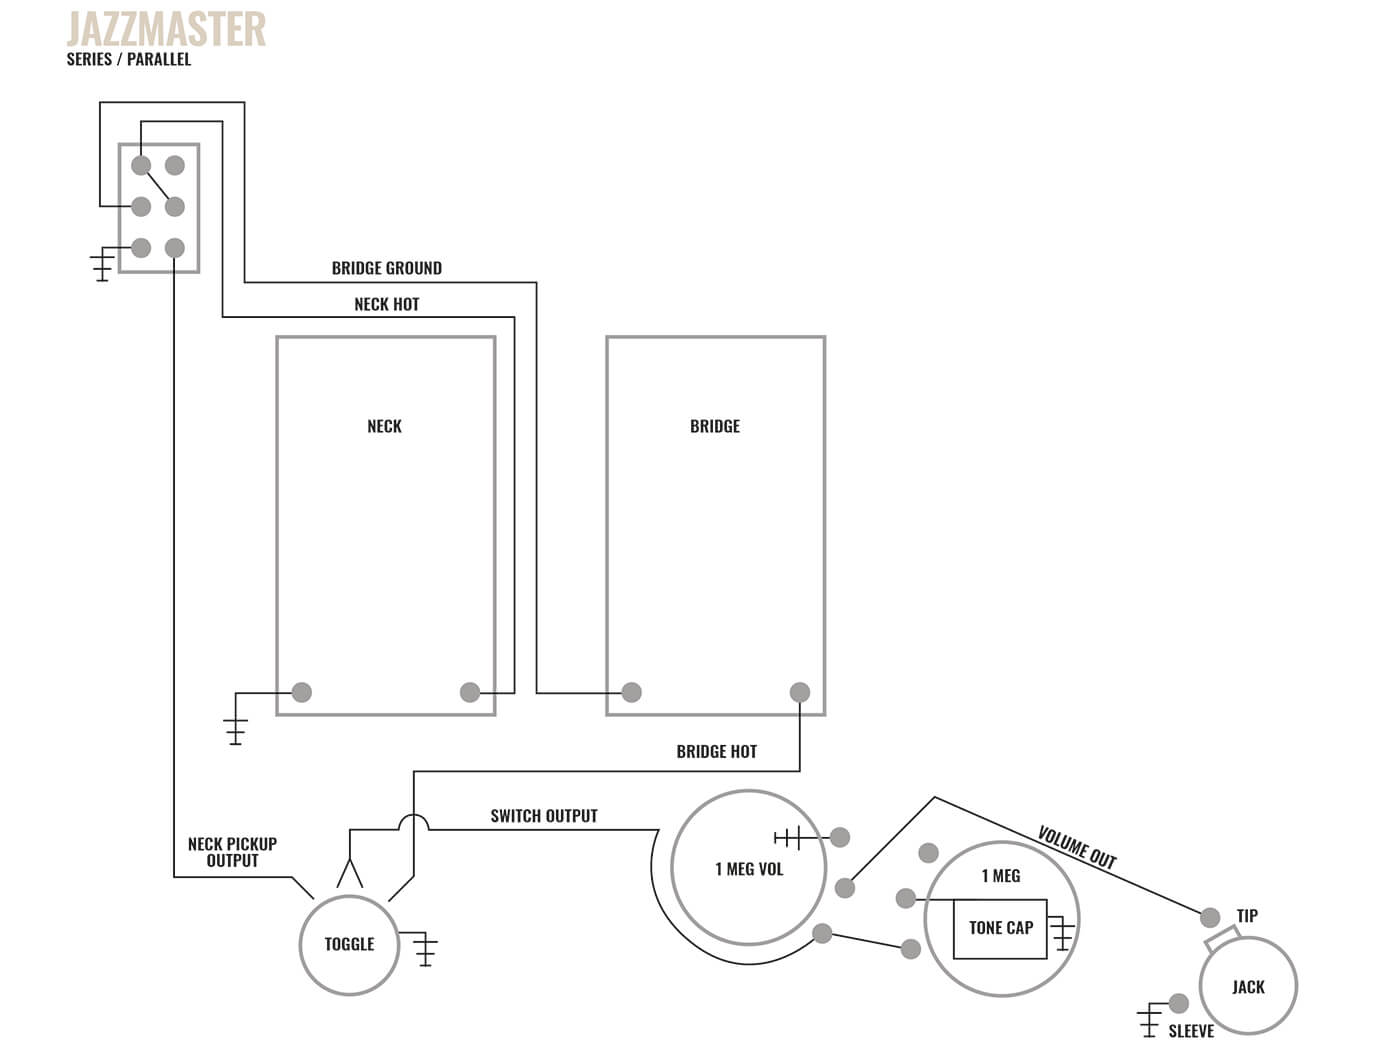 Fender Jazzmaster Wiring Diagrams